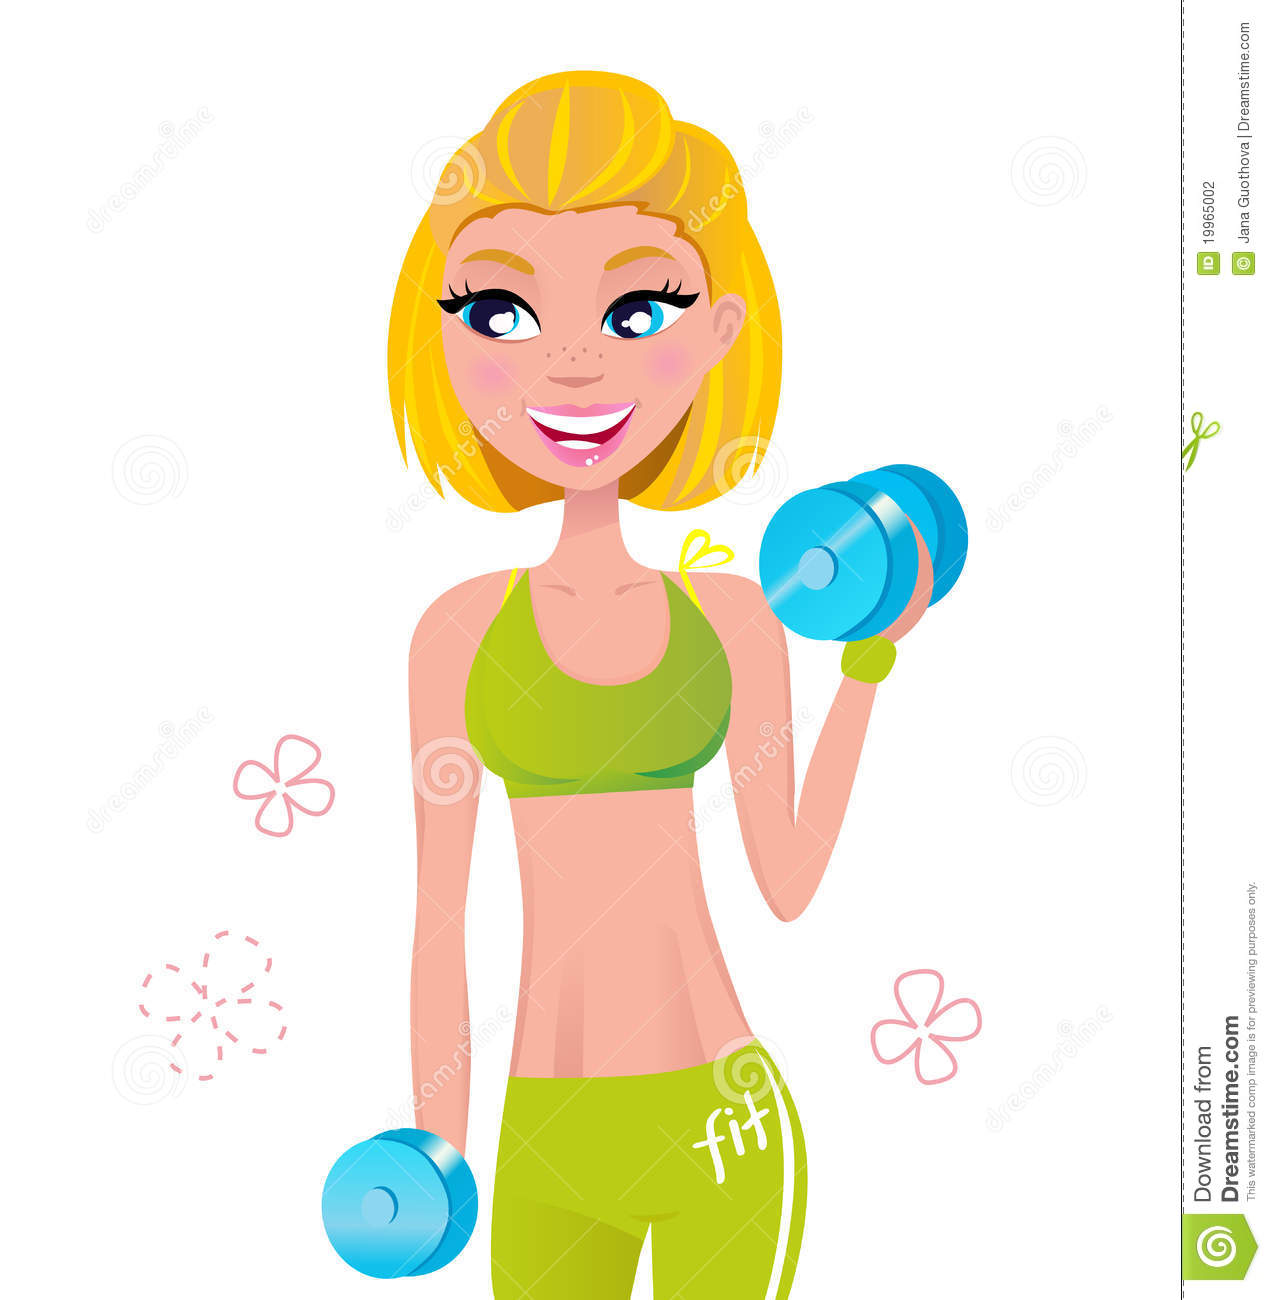 Women exercising clipart 5 » Clipart Station.